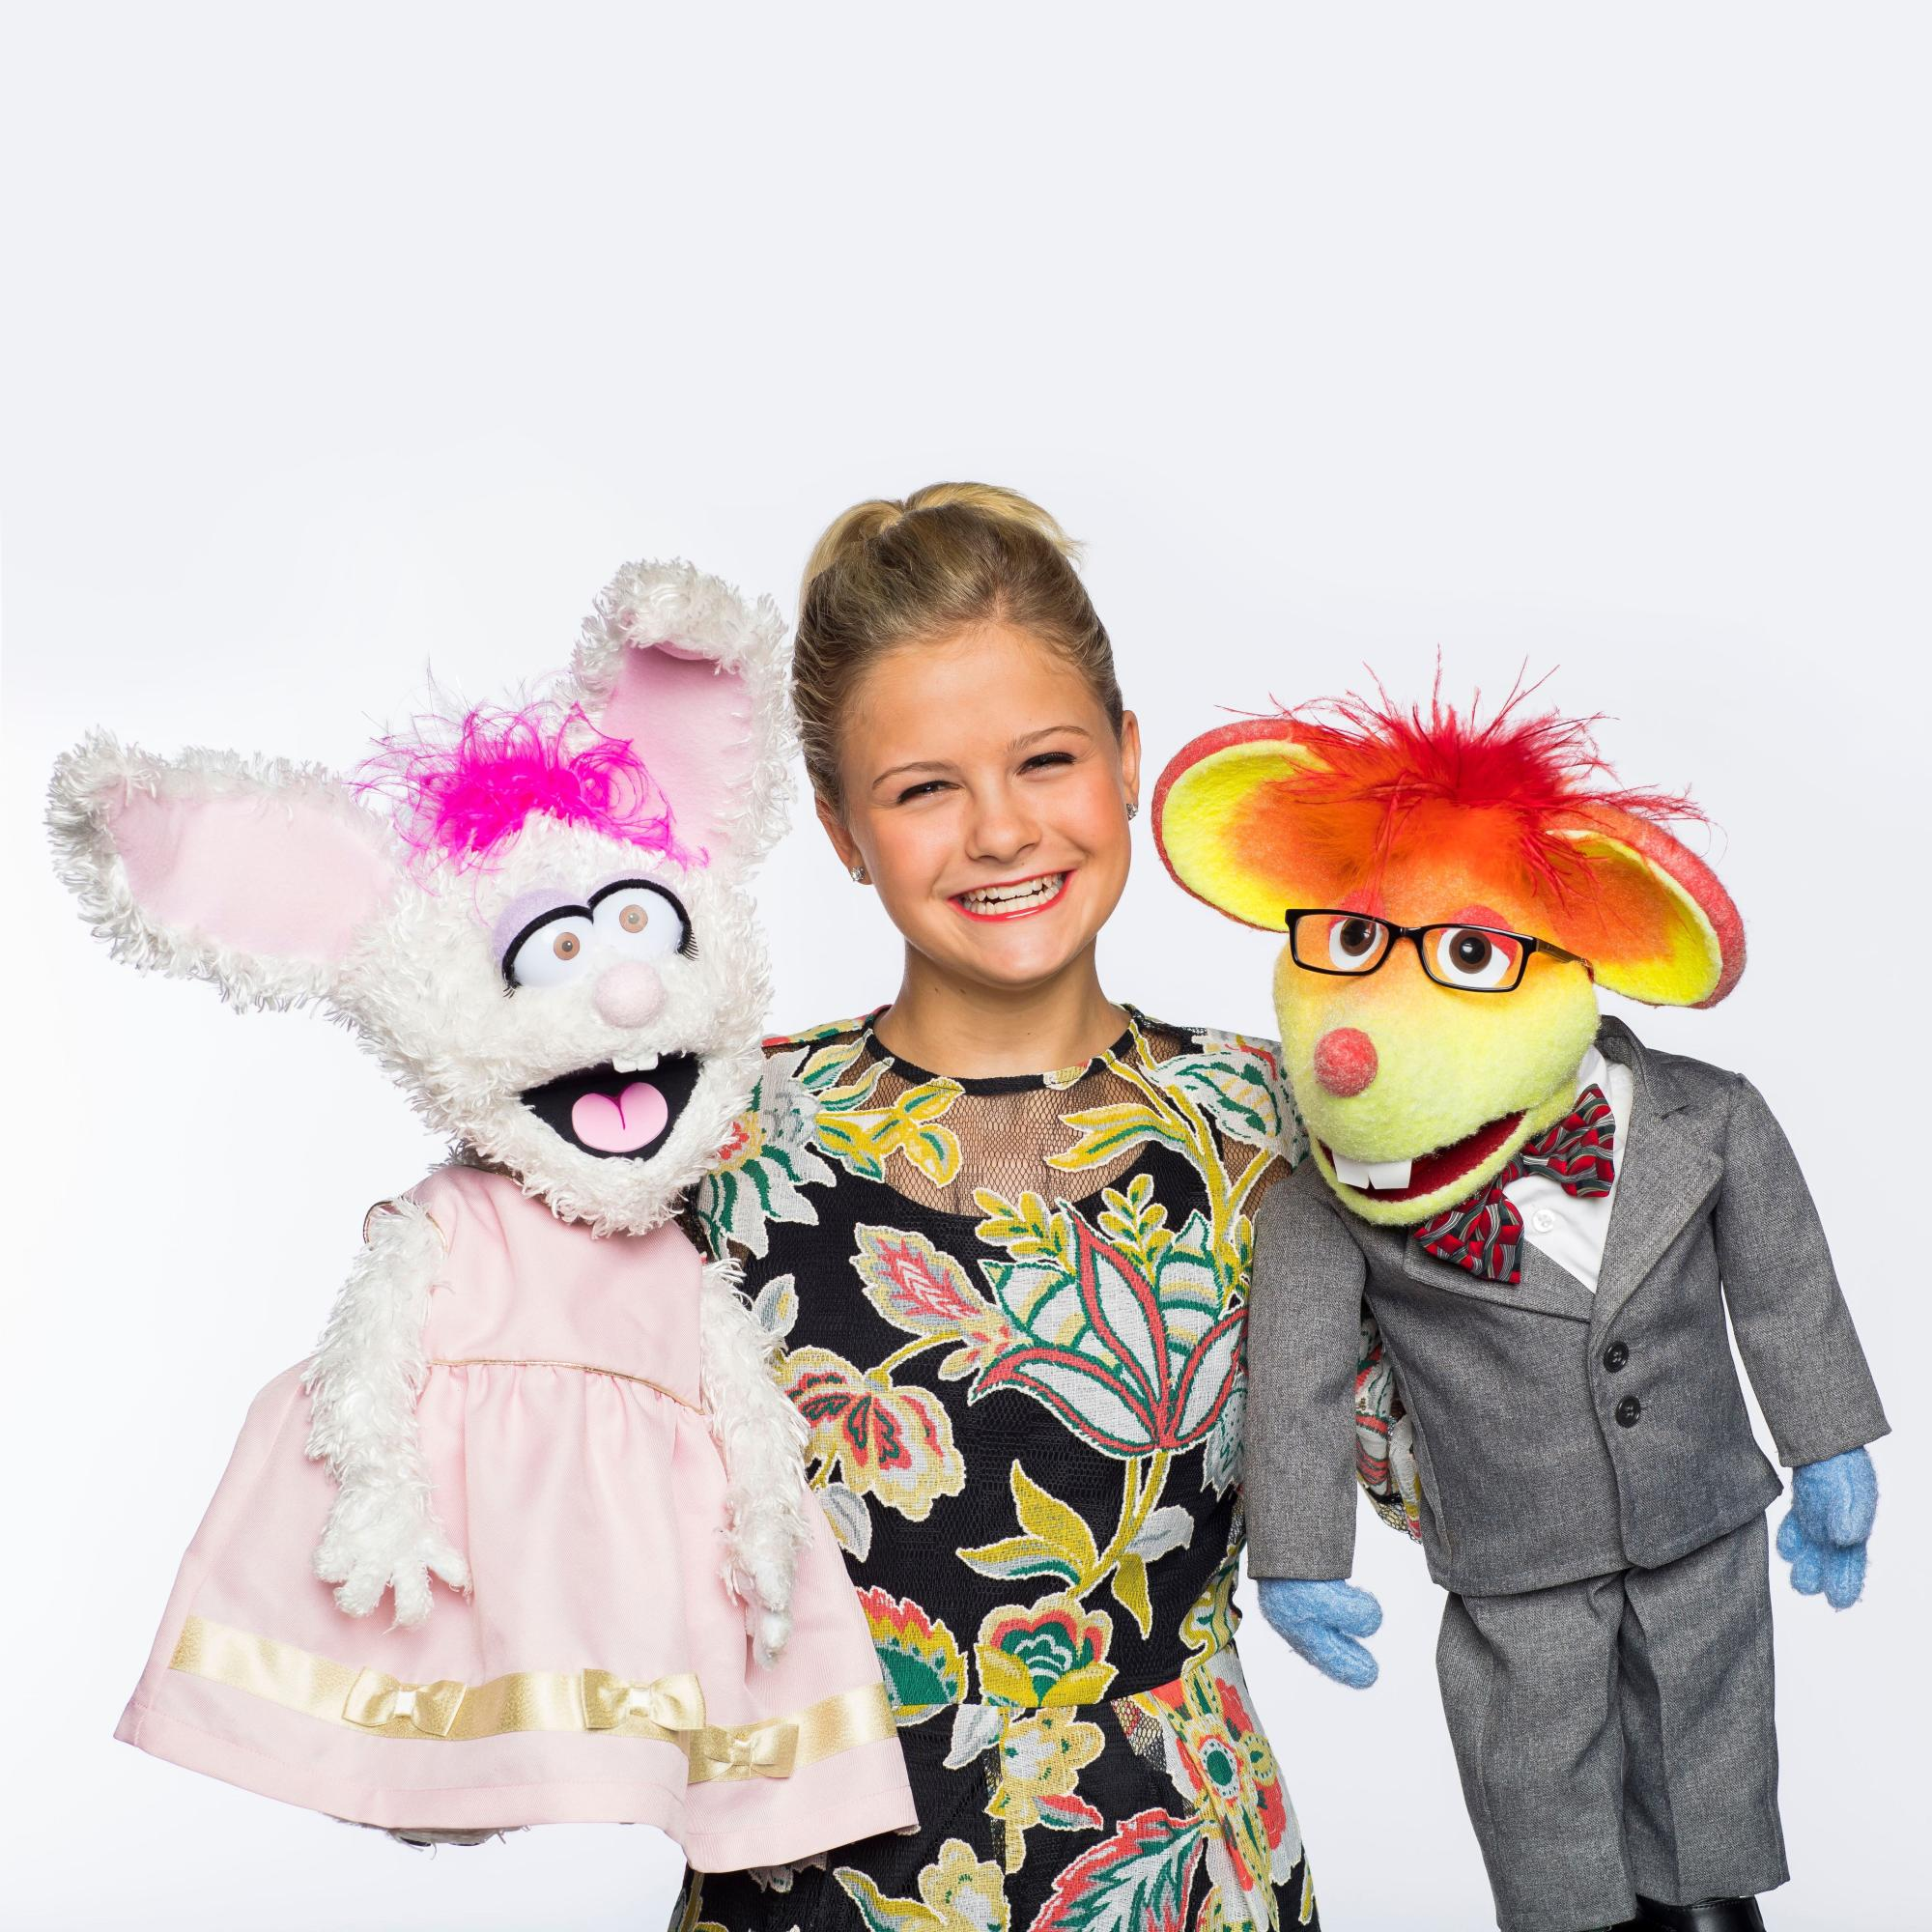 Darci_and_friends.jpg